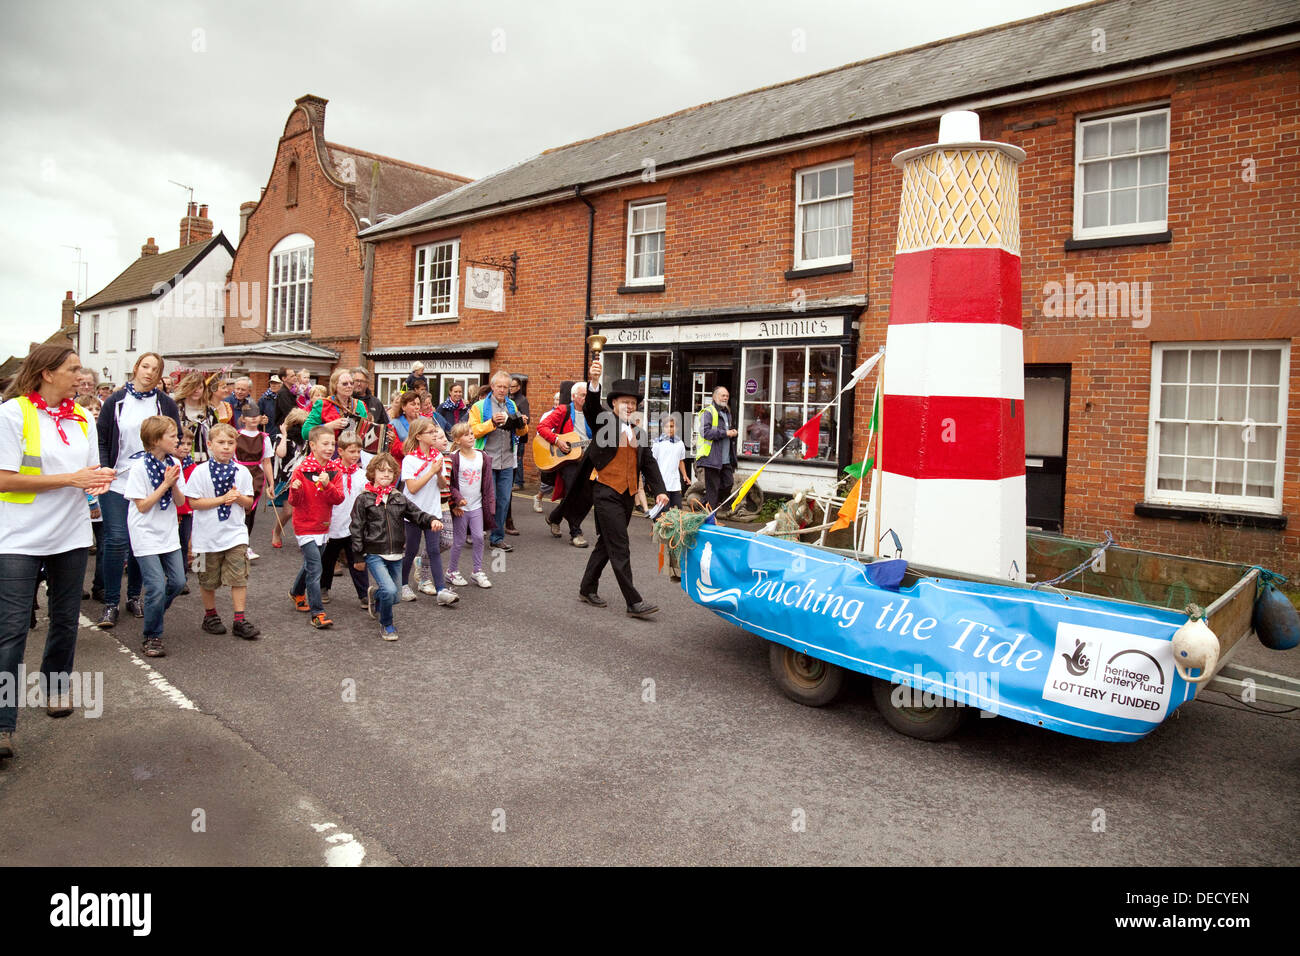 Local village fete and street parade celebrating the lighthouse, Orford, Suffolk UK - Stock Image